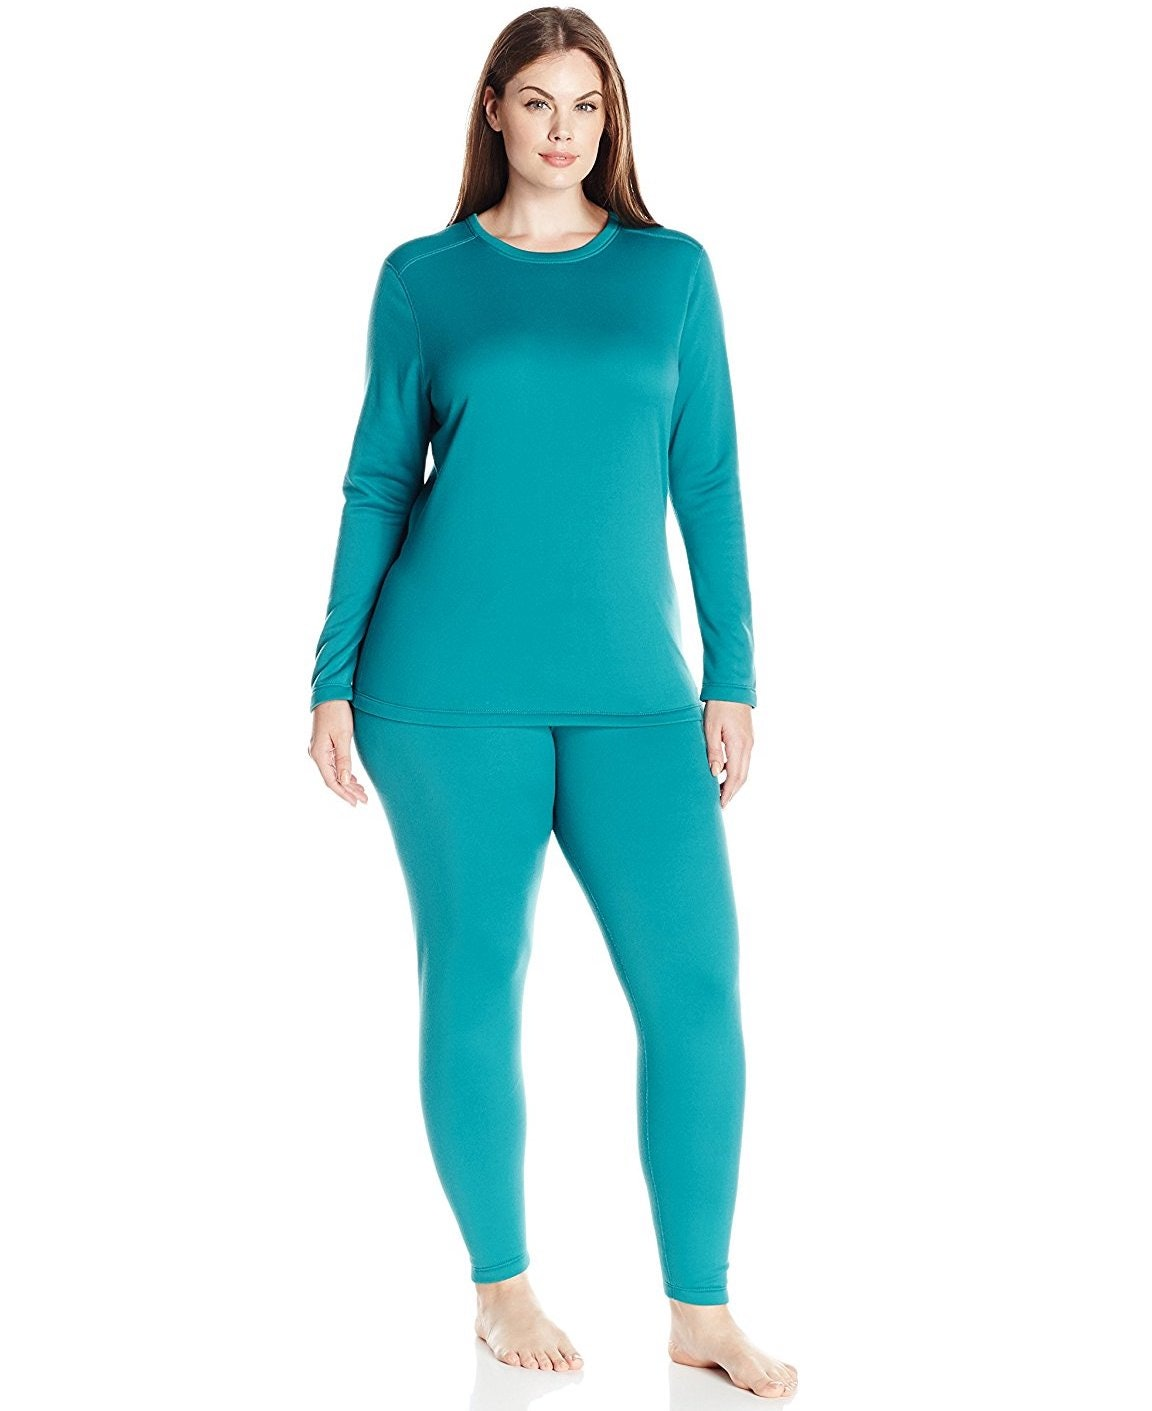 23ae8699318359 The 7 Best Thermal Underwear For Women